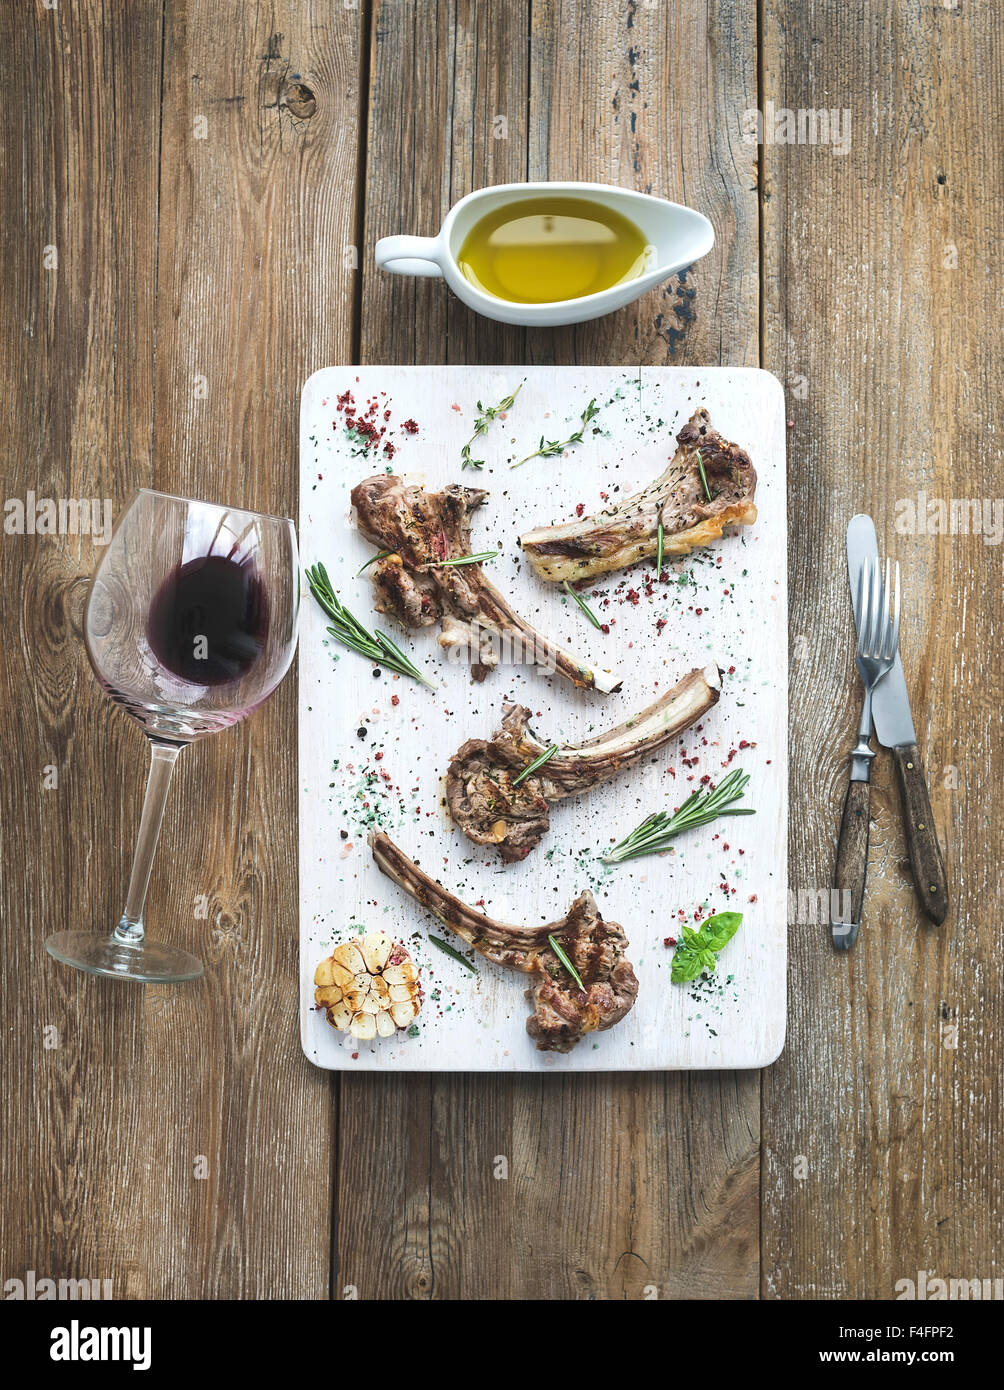 Grilled lamb chops. Rack of Lamb with garlic, rosemary and spices on white serving board, wine glass, oil in a saucer, - Stock Image